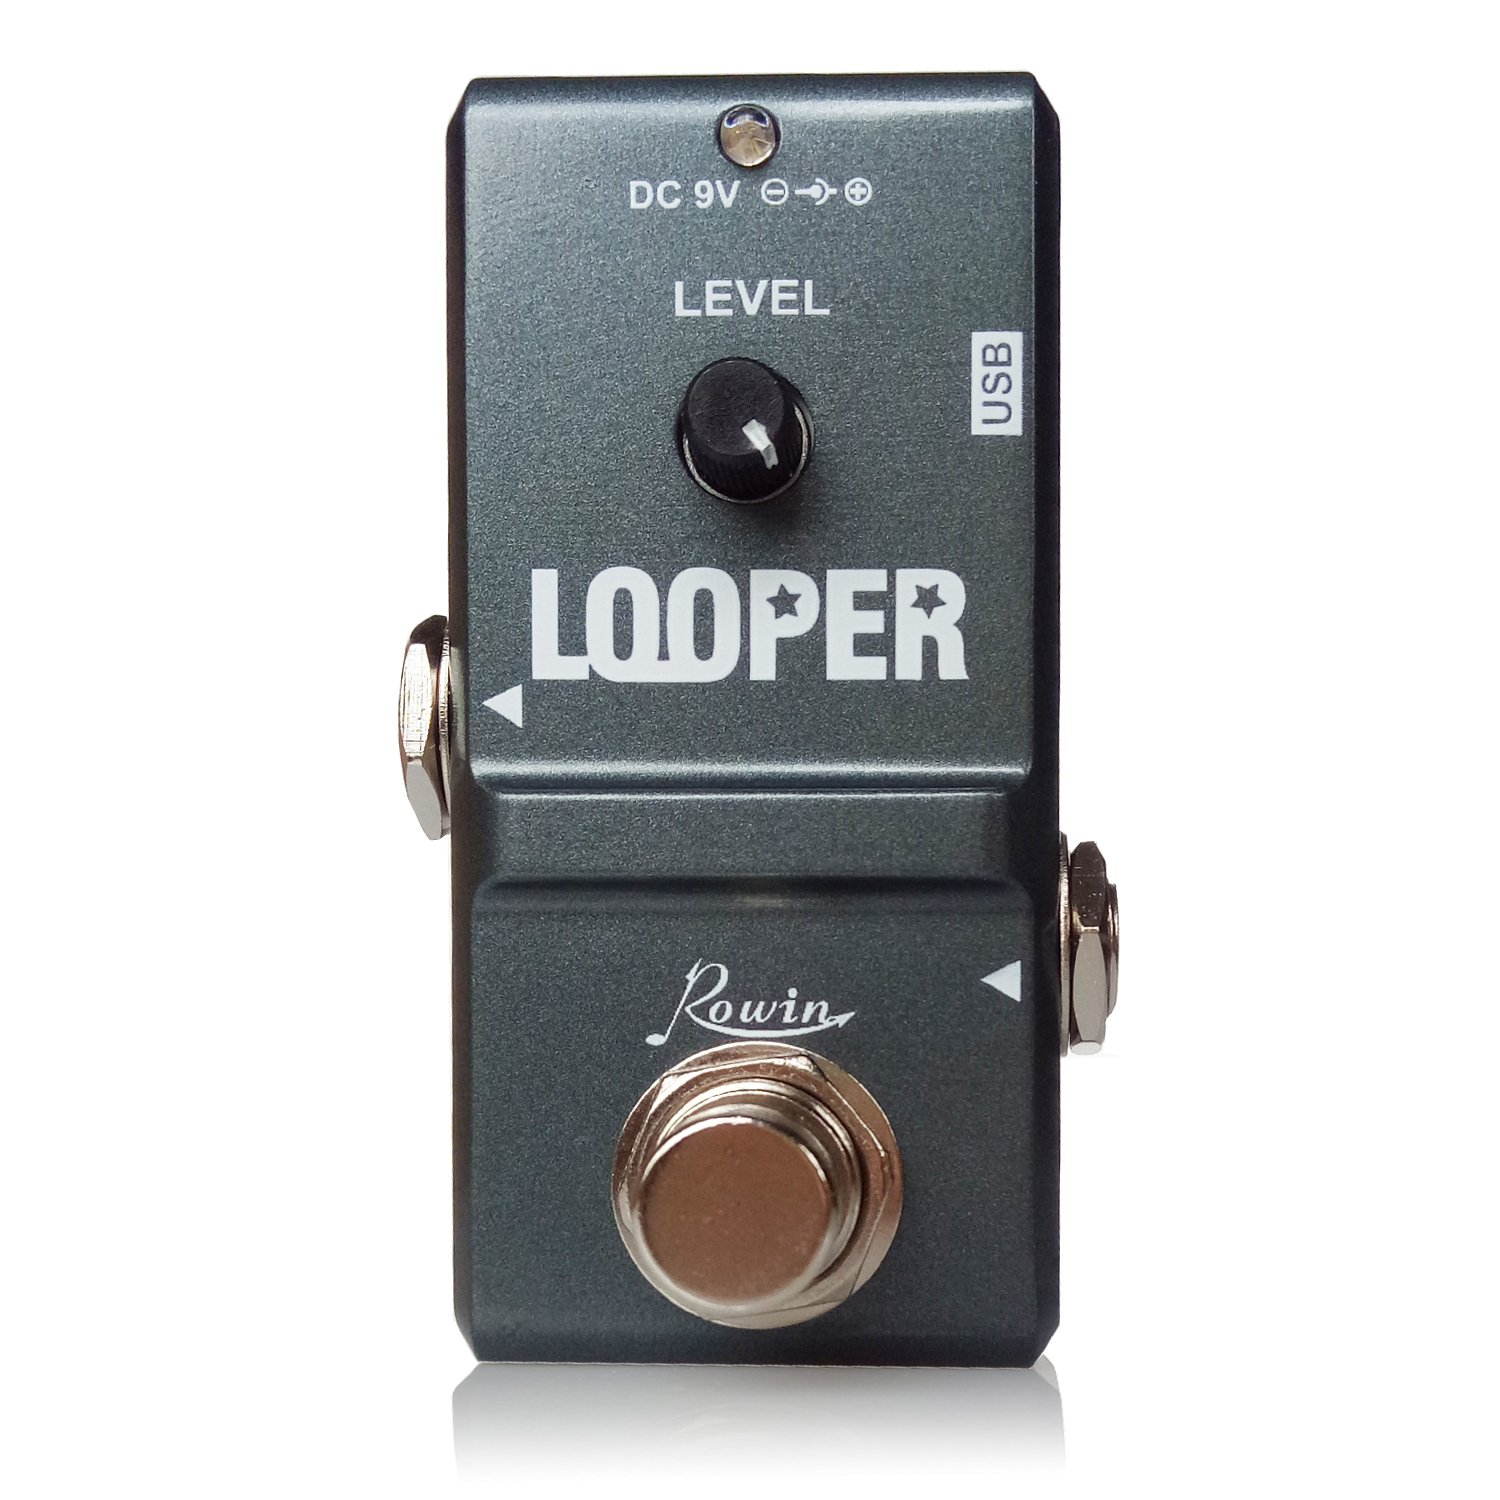 Rowin Tiny Looper Electric Guitar Effect Pedal 10 Minutes of Looping Unlimited Overdubs by Rowin